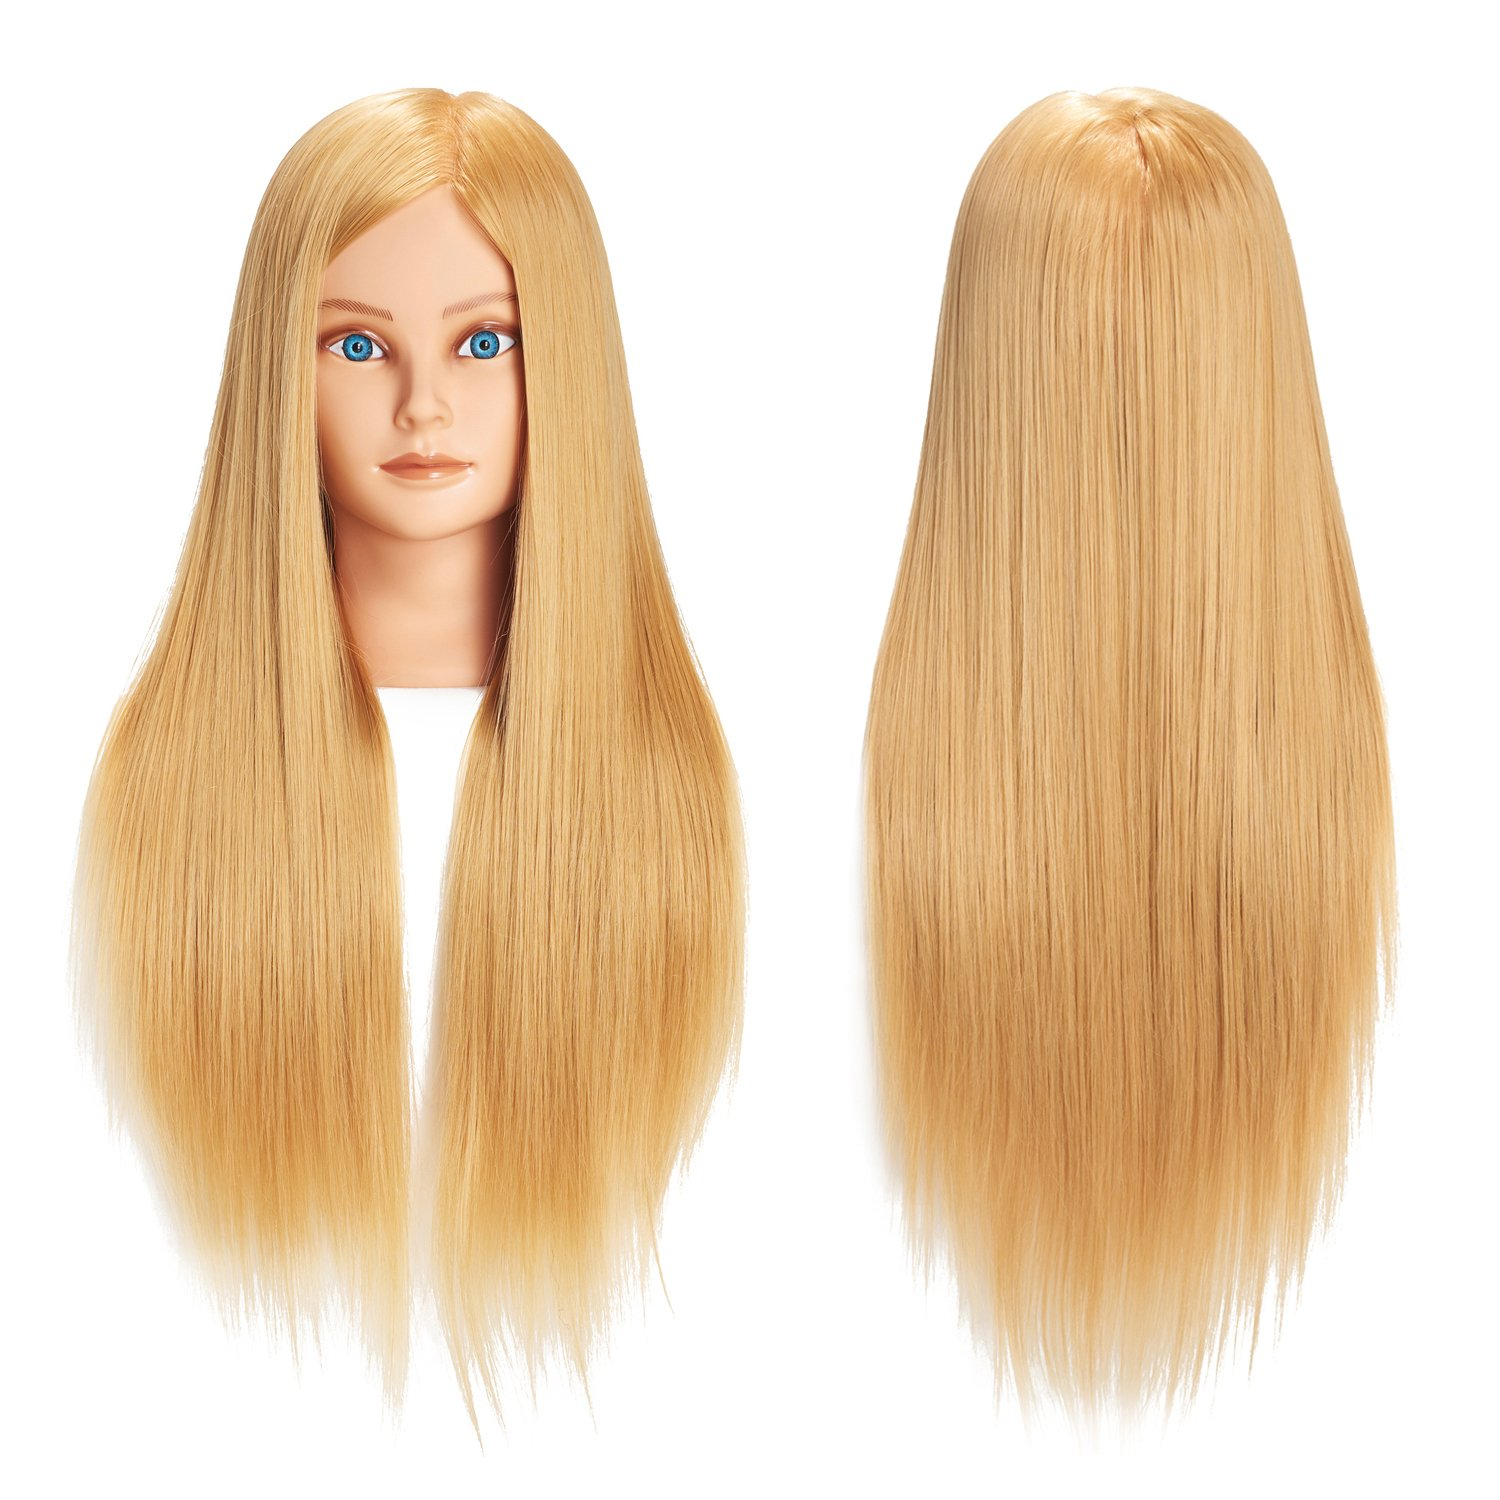 """Training Head 26""""-28"""" Mannequin Head Hair Styling Manikin Cosmetology Doll Head Synthetic Fiber Hair Hairdressing Training Model Free Clamp (1711W2720)"""